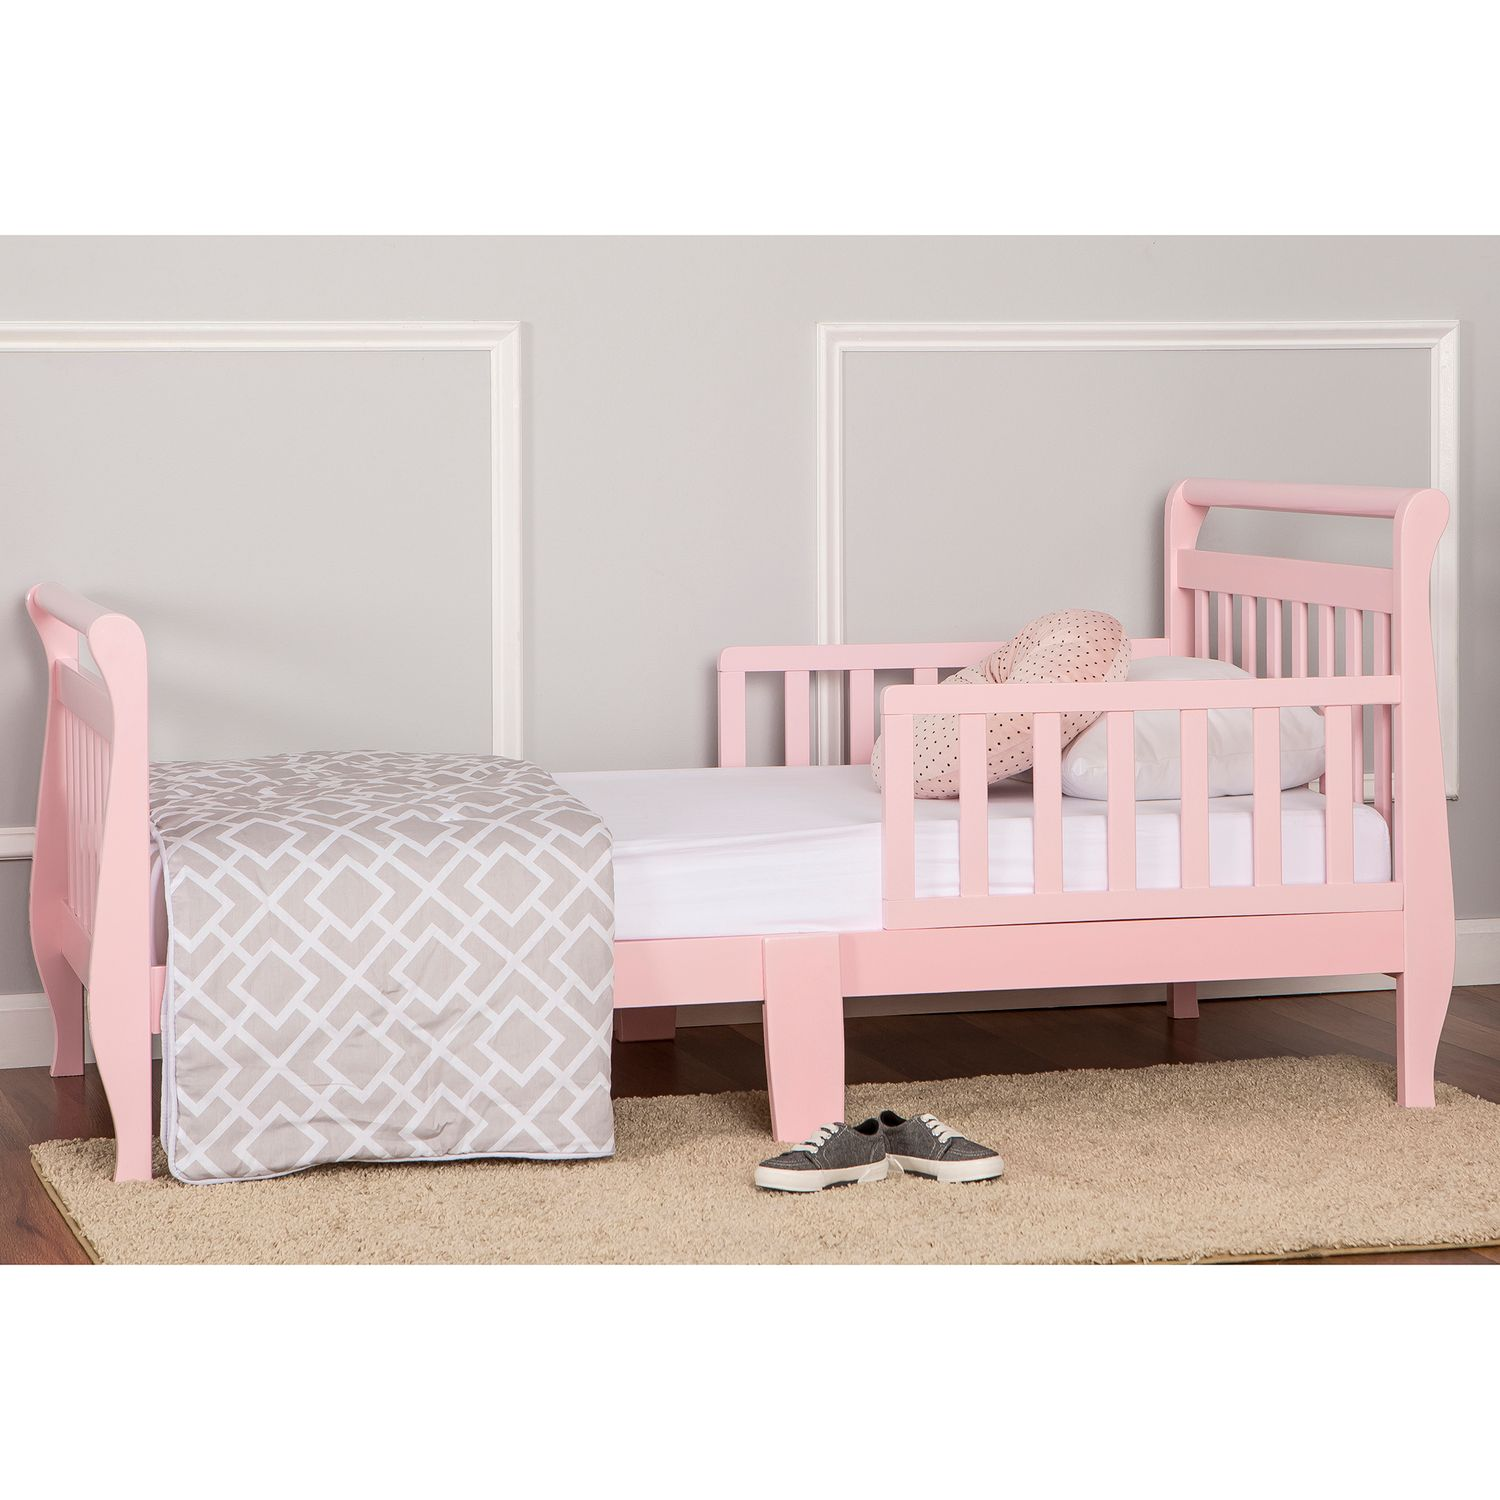 Toddler Beds Nursery Furniture Baby Gear